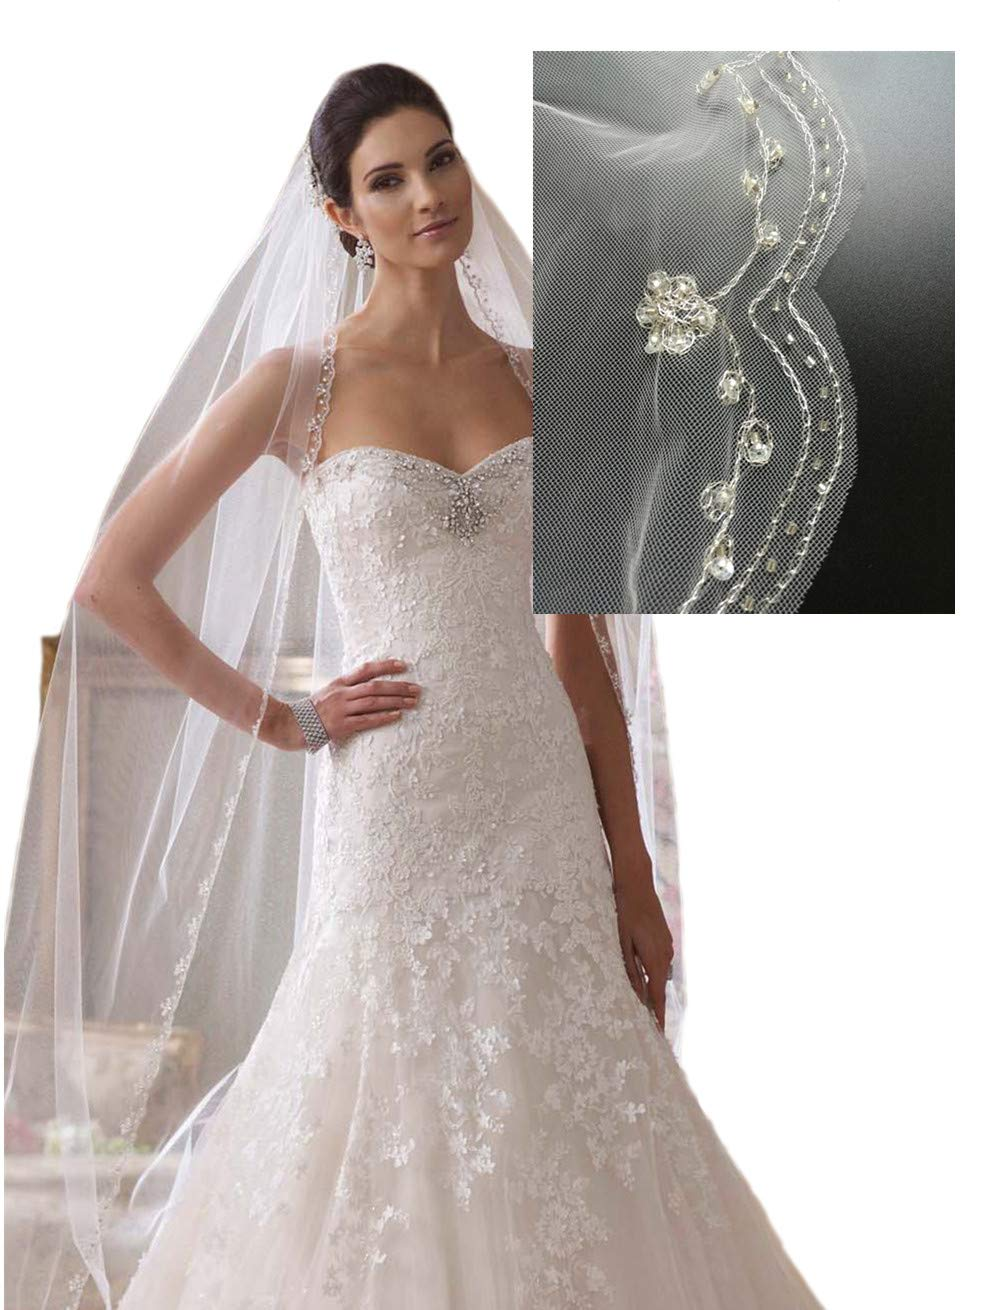 Passat Ivory 1 Tier 3M NEW! Floral Beaded Scallop Edge Cathedral Wedding Bridal Veil 224